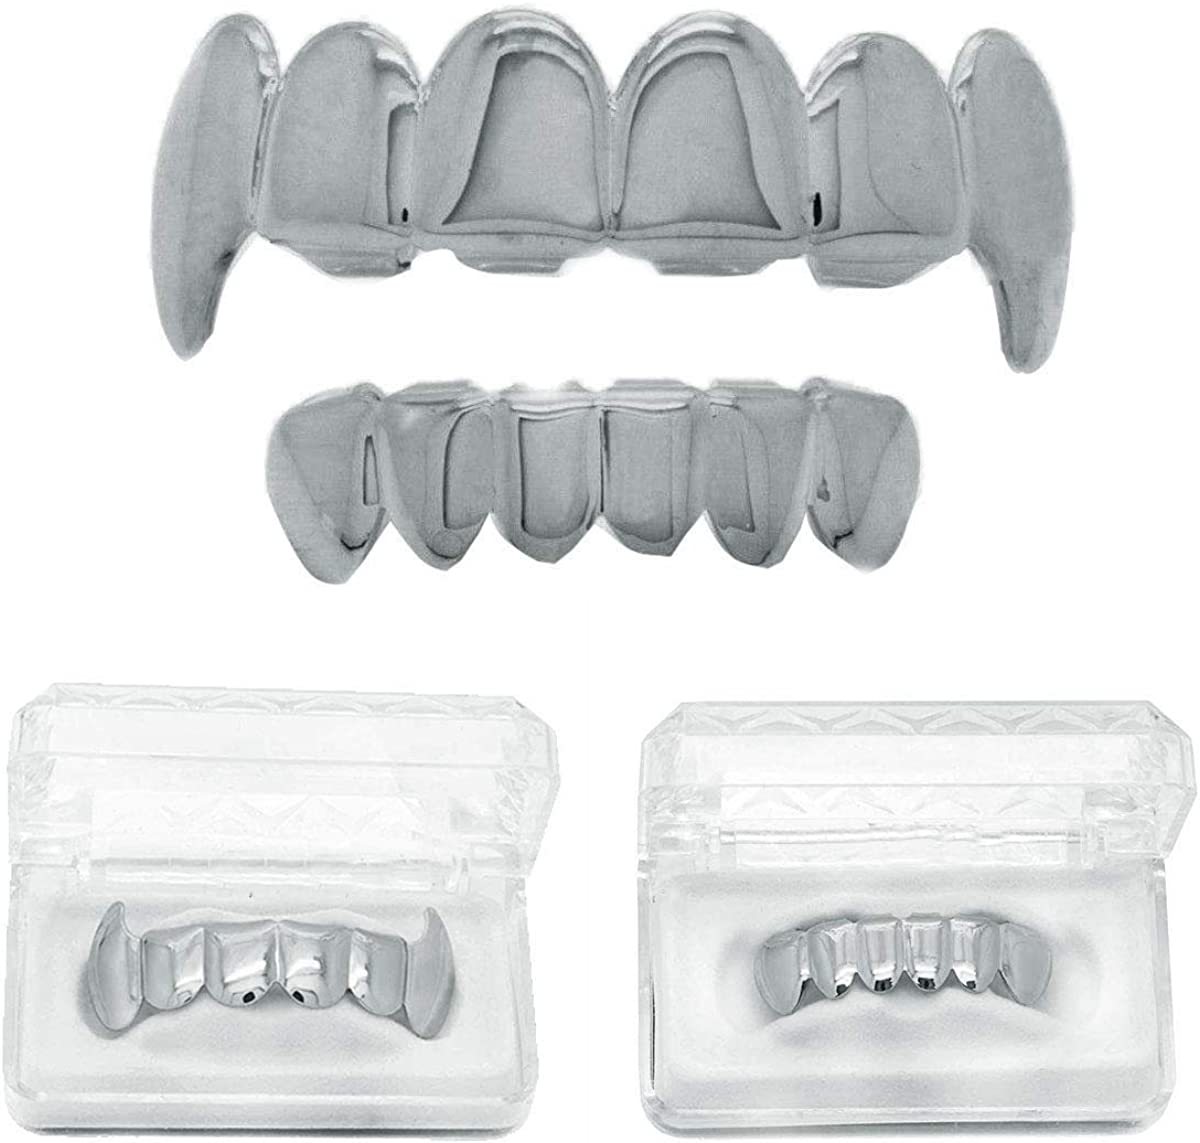 L&L Nation Silver Plated New Top & Bottom Mouth Teeth Fang Grillz 4 Slicone + 2 Storage Case+ Polishing